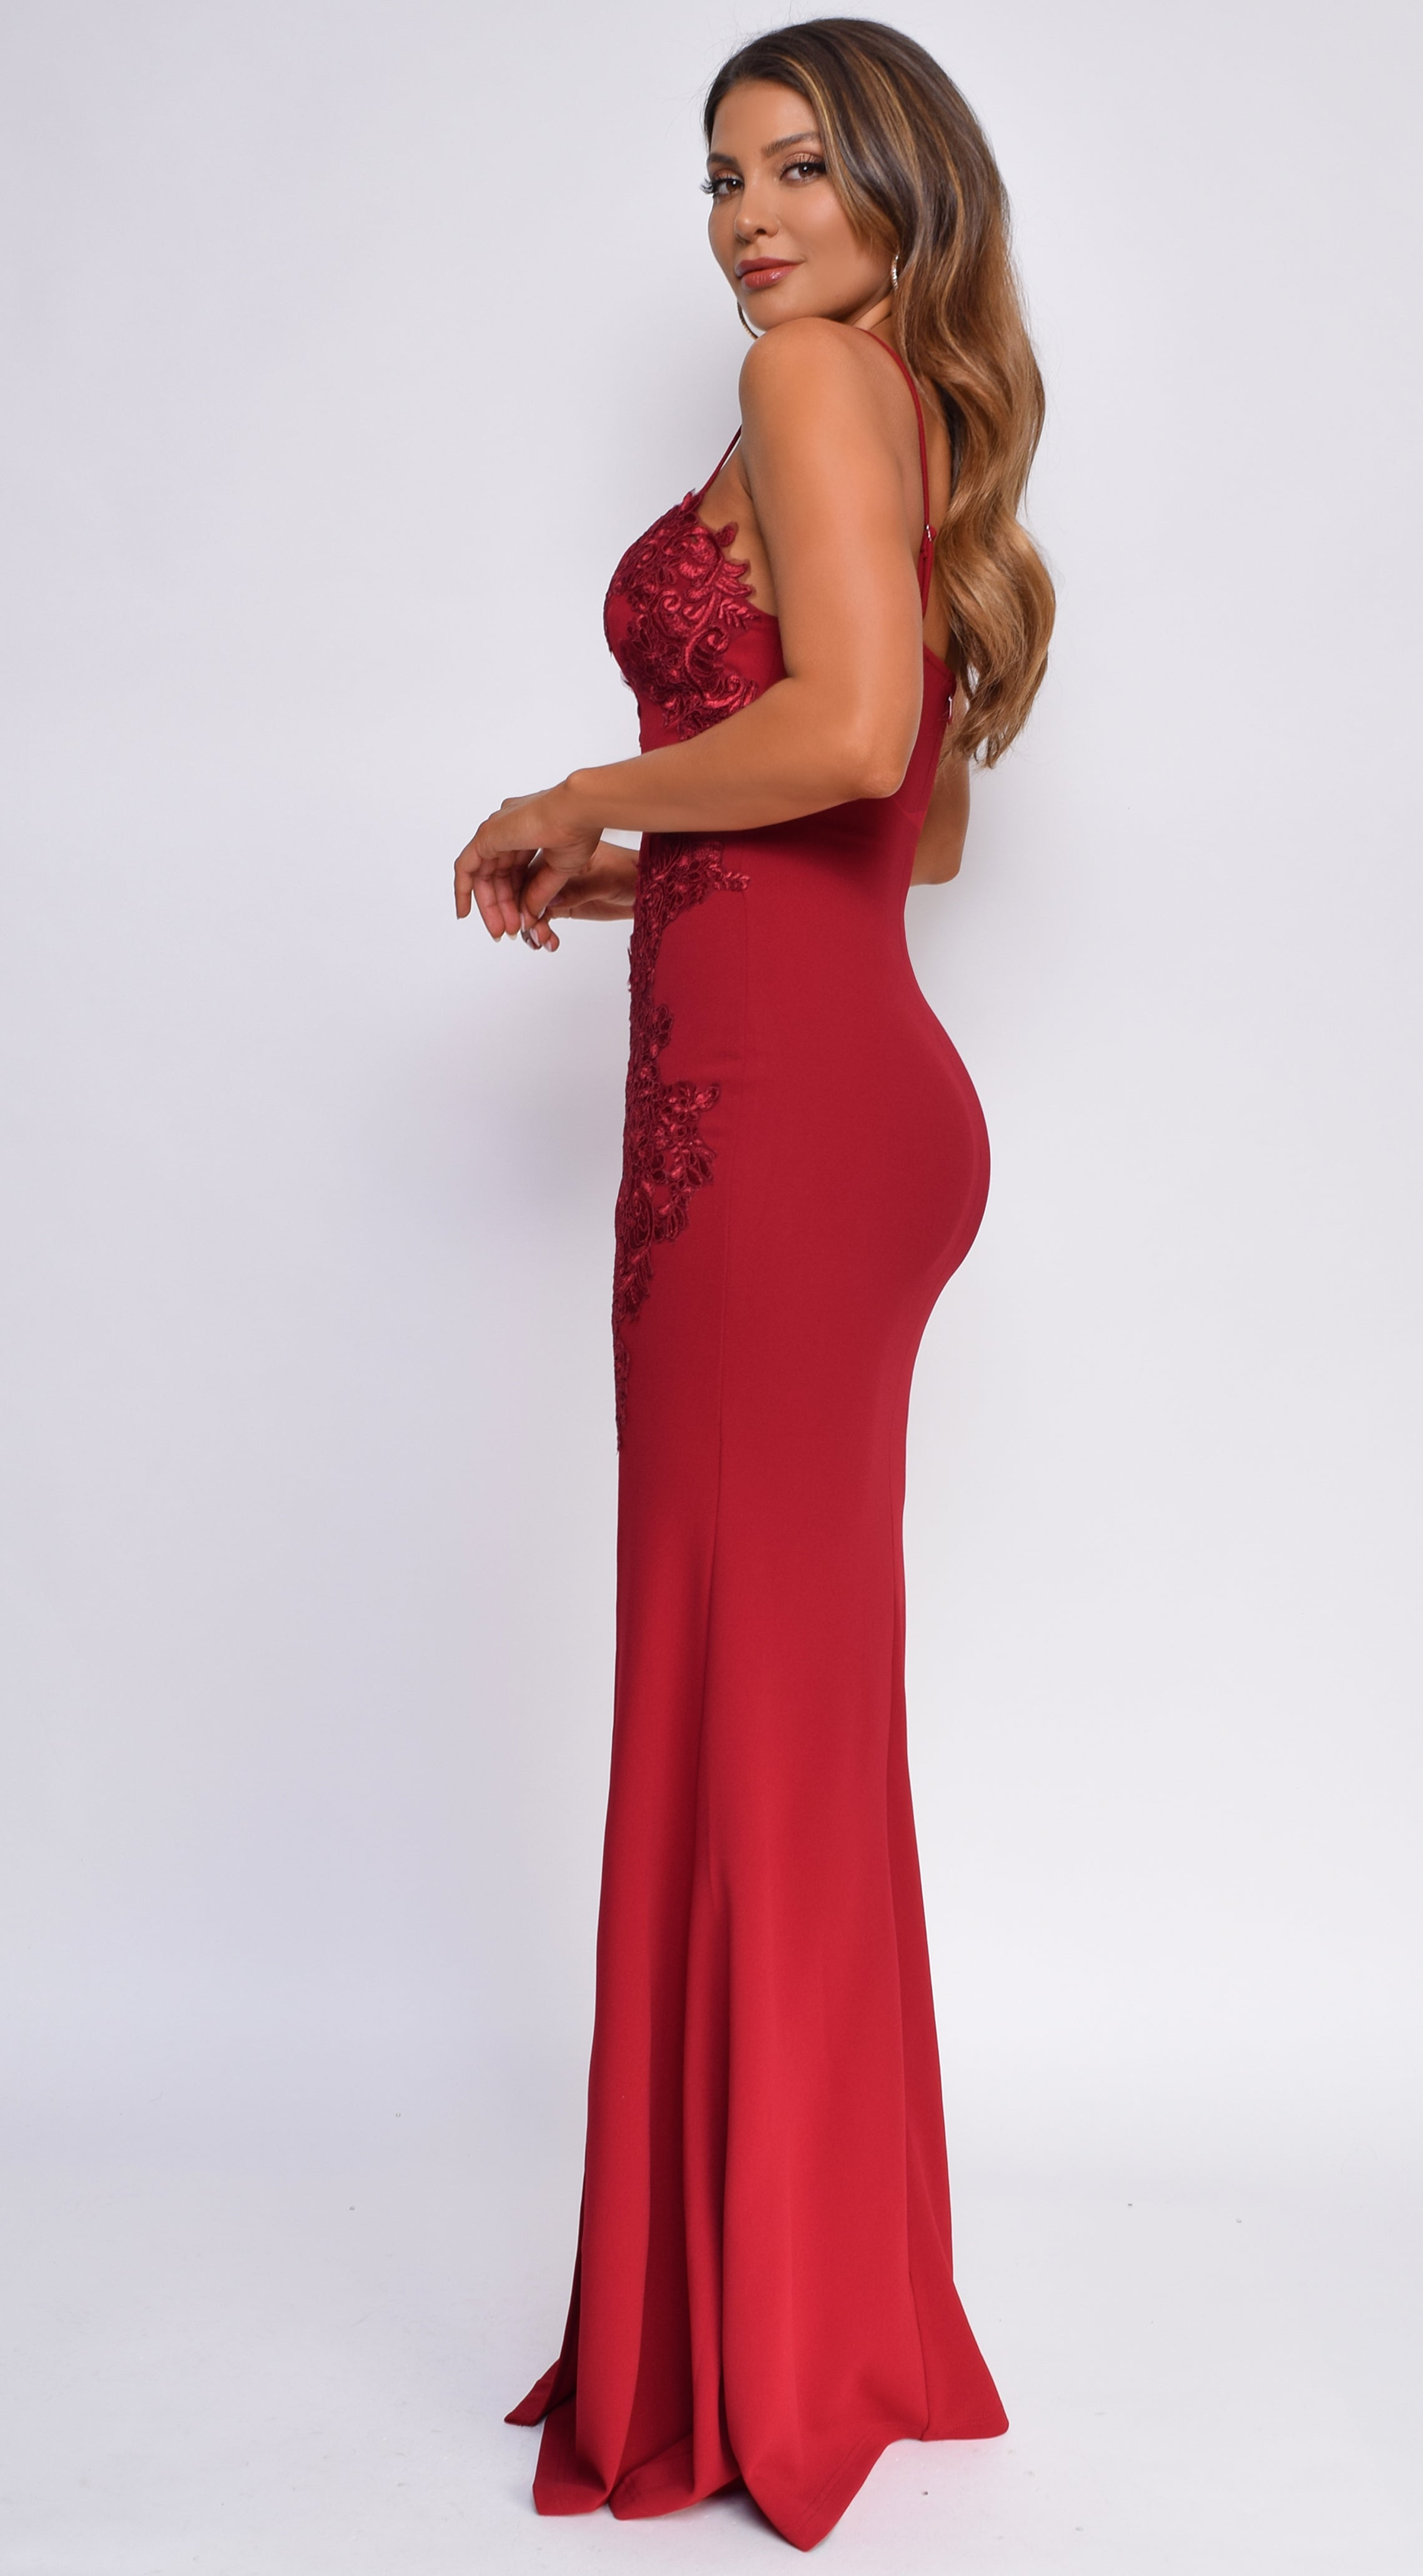 Christiana Wine Red Floral Lace Applique High Side Slit Gown